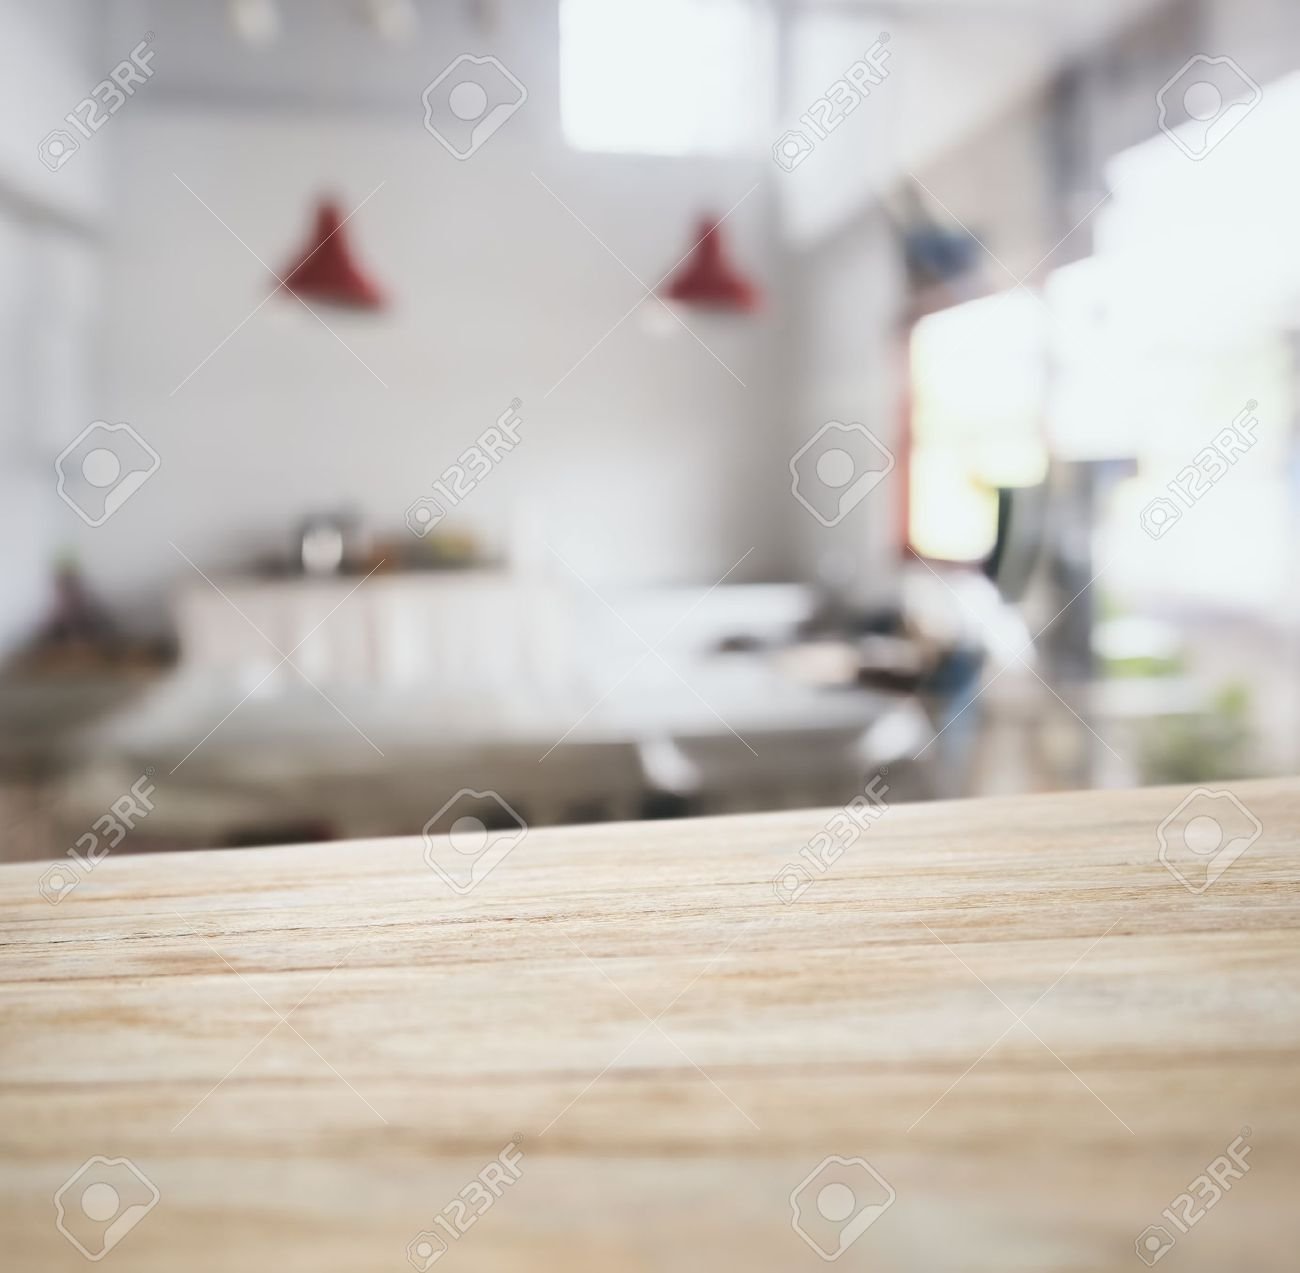 Kitchen Table Top Background table top counter bar with blurred kitchen background stock photo